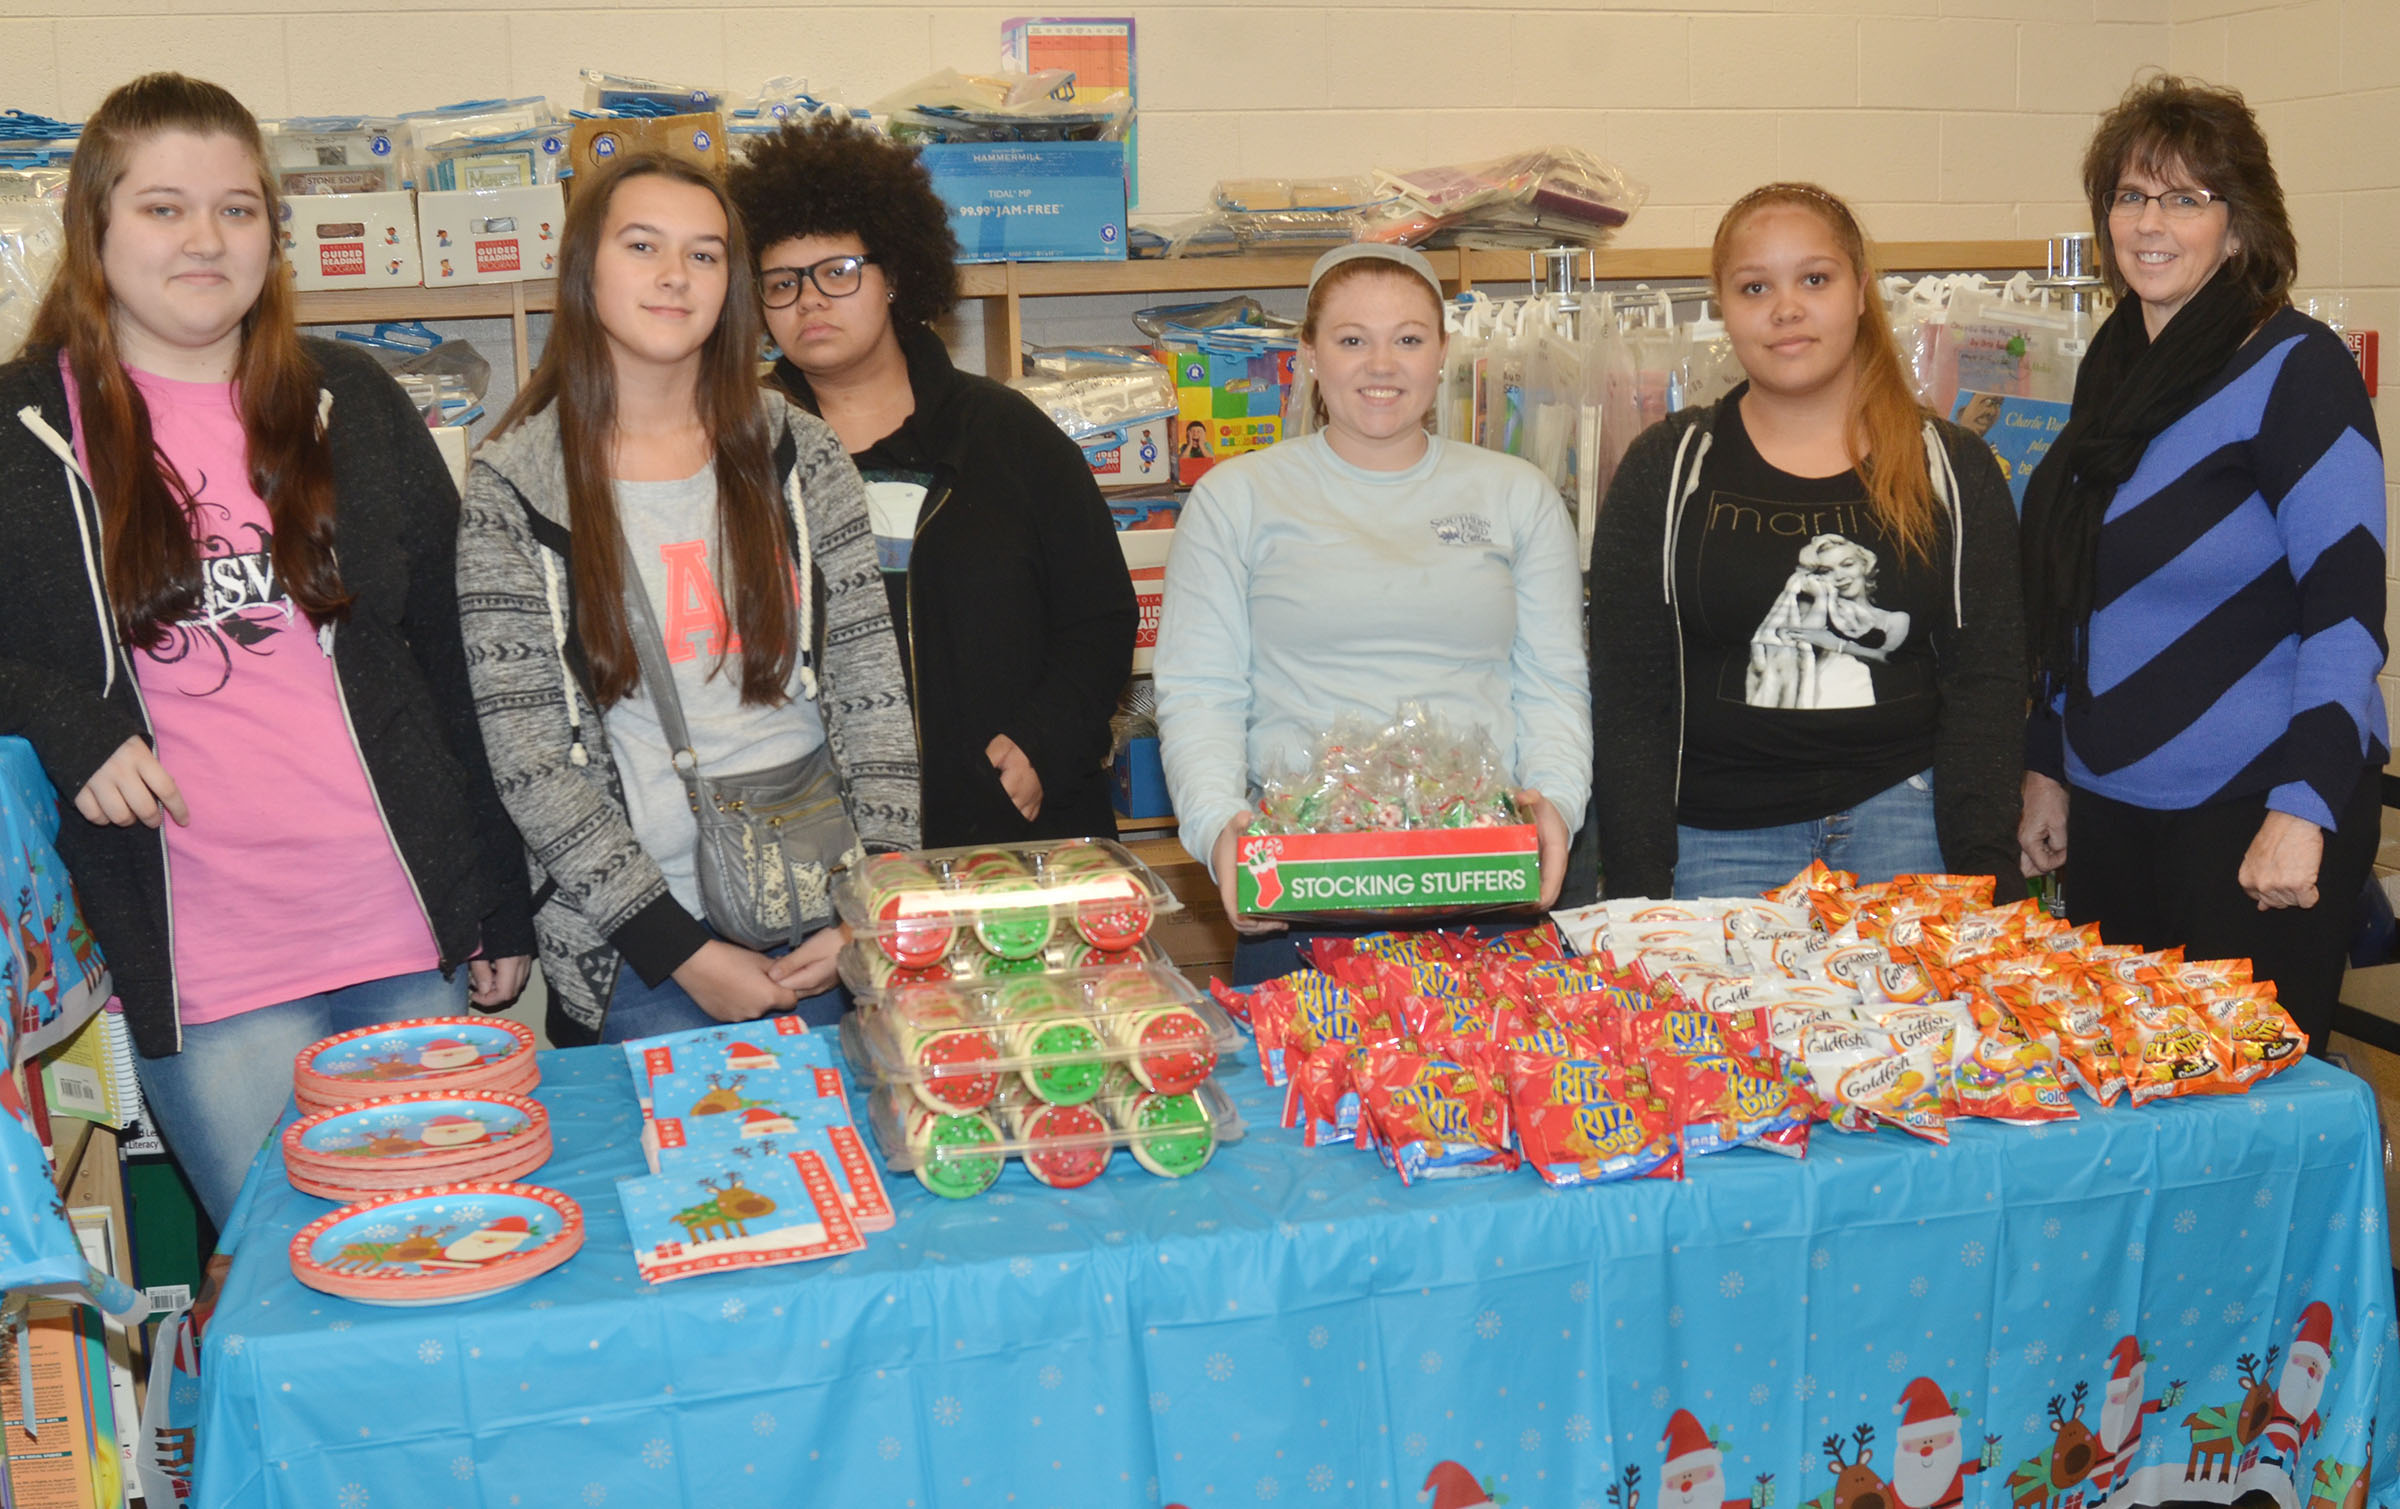 CHS FCCLA members, from left, juniors Lauren Riddle and Makala Antle, sophomores Jaylah Tucker and Bethany Harris and junior Shailyn Fields and sponsor Deanna Campbell help serve snacks at a Christmas party for Campbellsville Elementary School students.